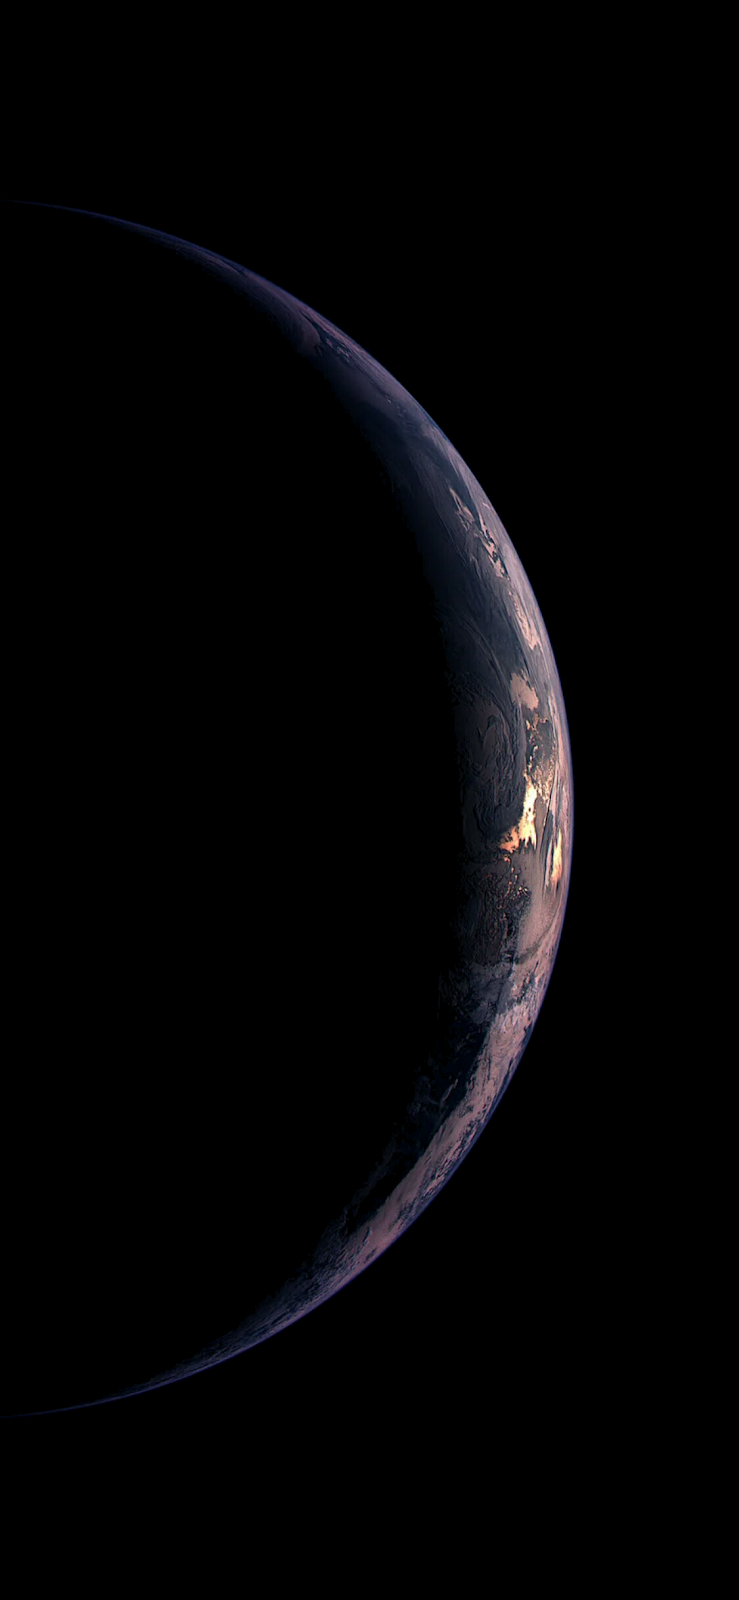 Earth for iPhone X/XS ( for Amoled display) Fondo de